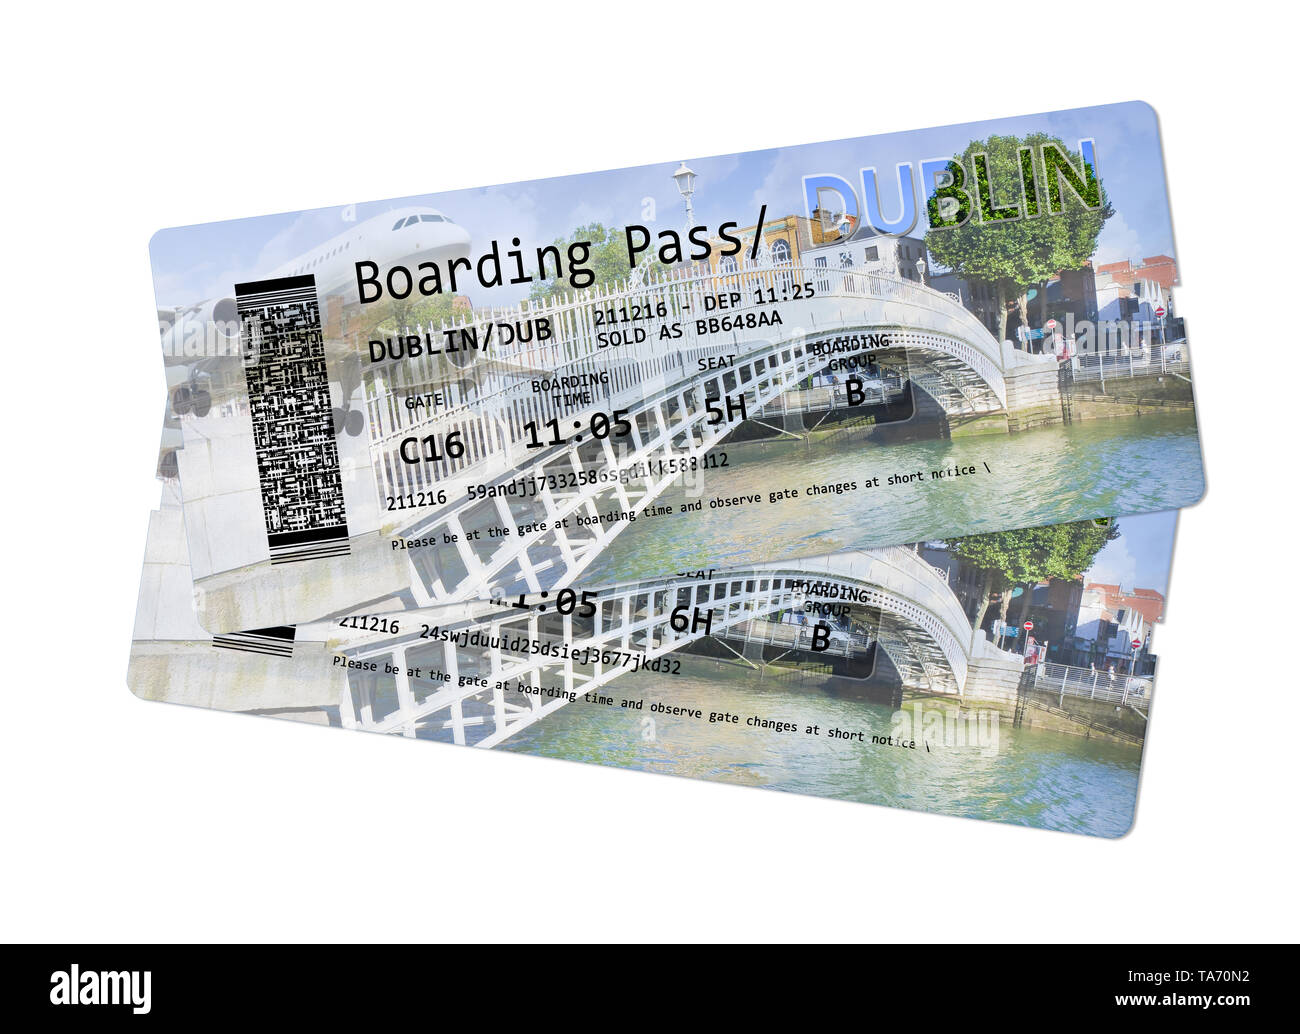 Airline boarding pass tickets to Dublin - The most famous bridge in Dublin called 'Half penny bridge' on background - Stock Image